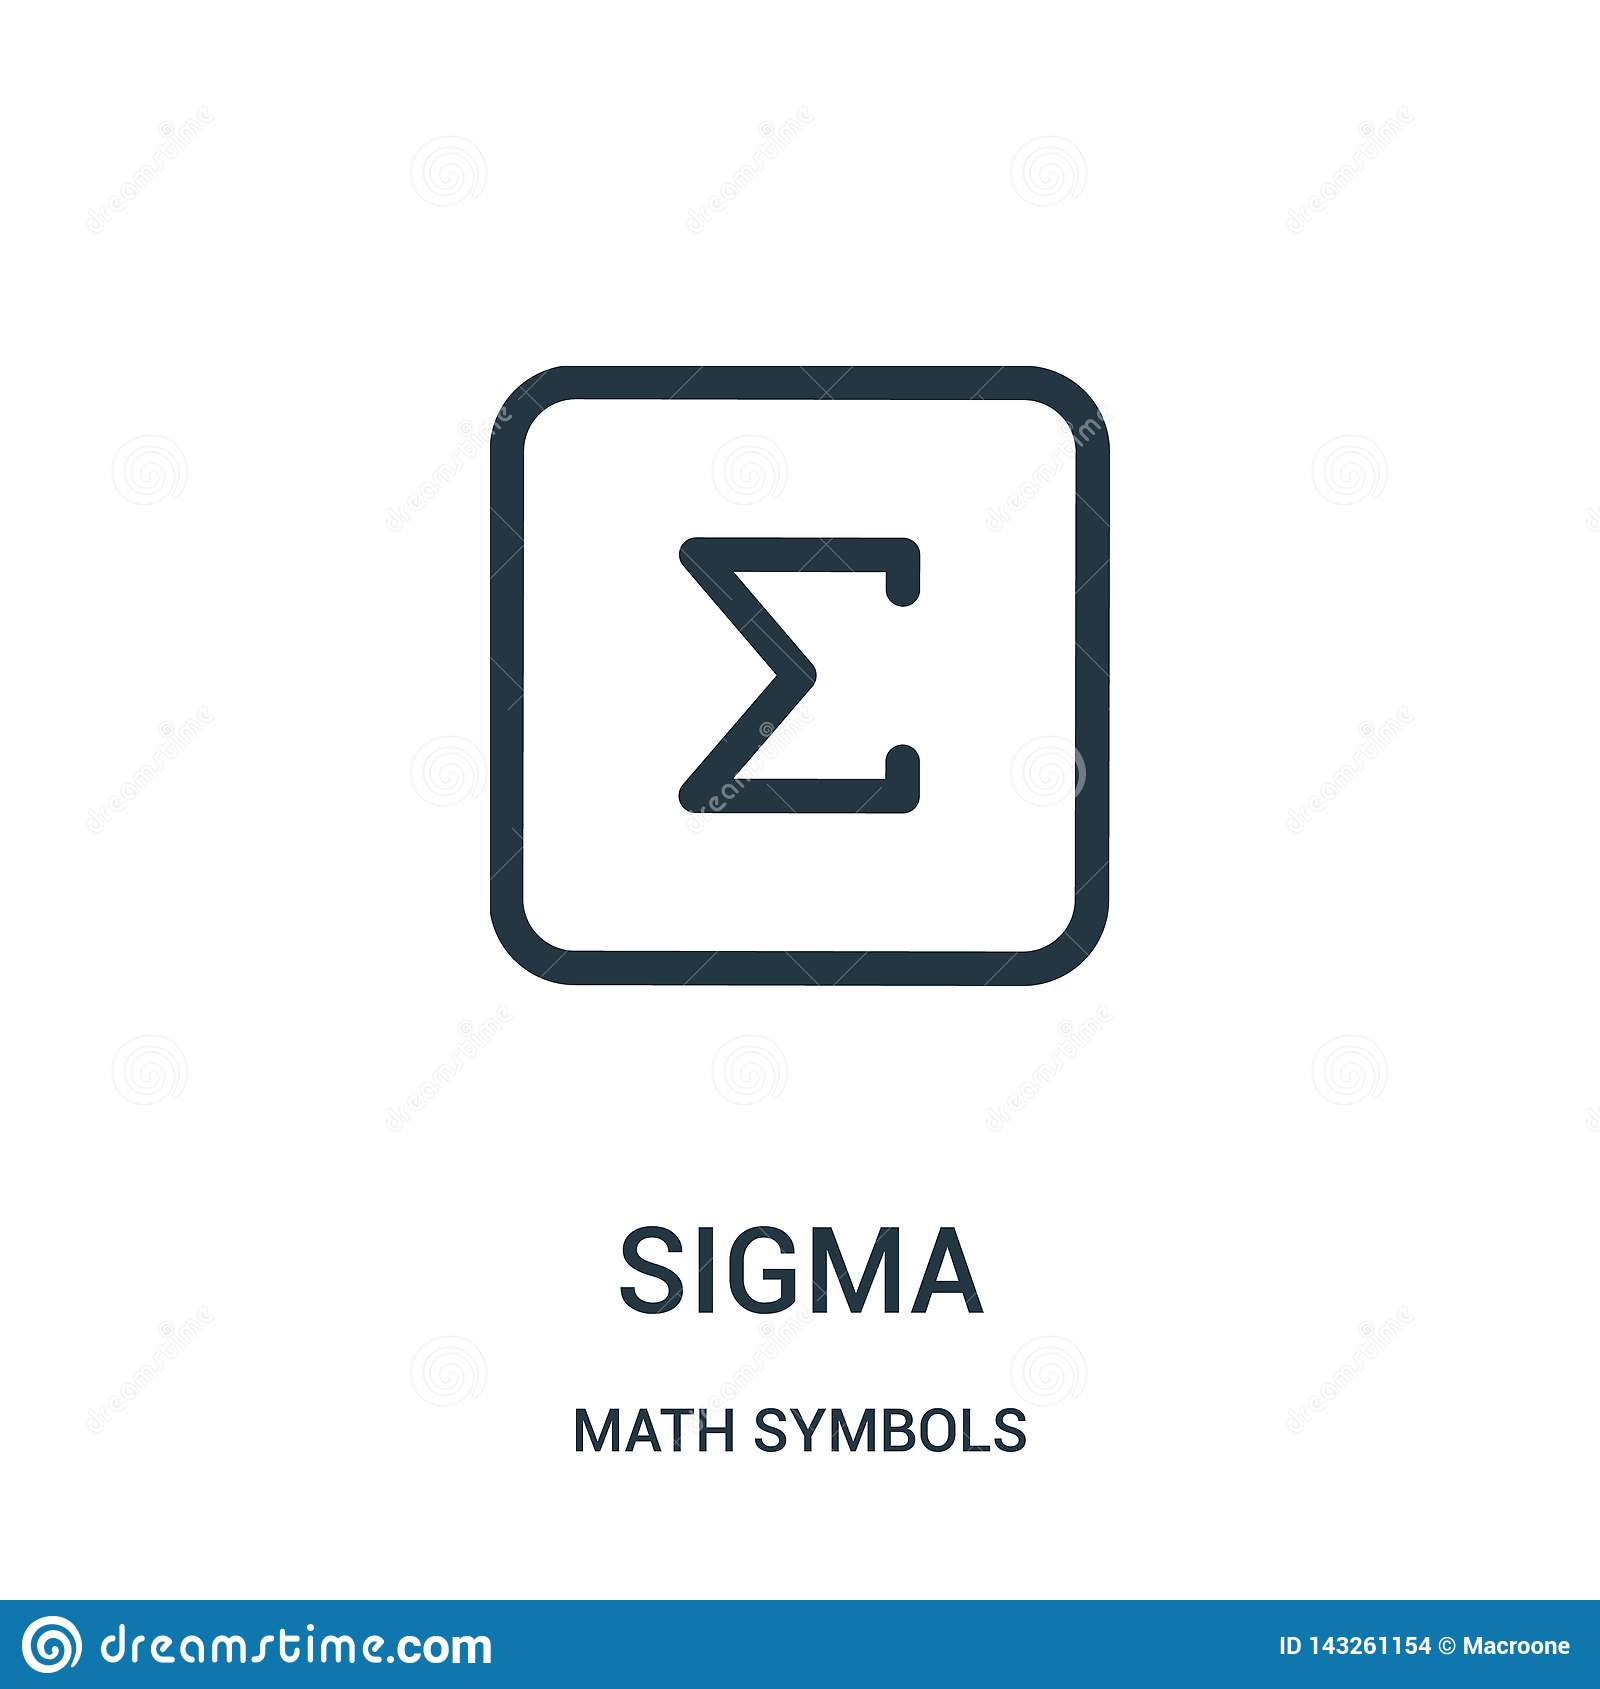 sigma icon vector from math symbols collection. Thin line sigma outline icon vector illustration